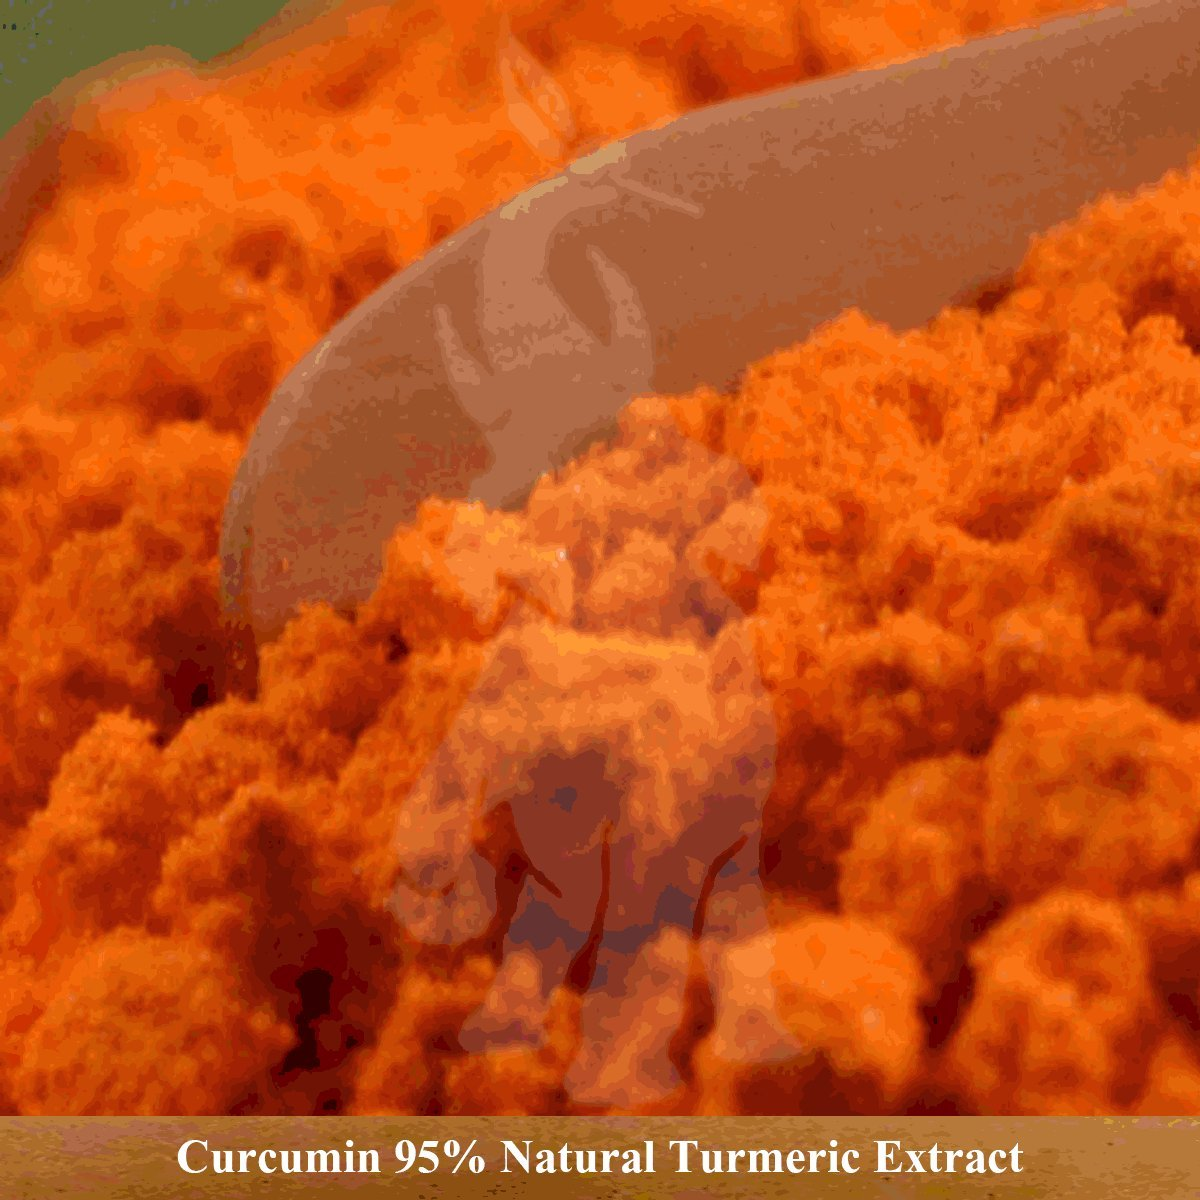 Turmeric Curcumin 95 Curcuminoids – Natural Turmeric Extract Powder, Anti-Inflammatory Supplement with 95 Standardized Curcuminoids 500 Grams 1.1 Lbs